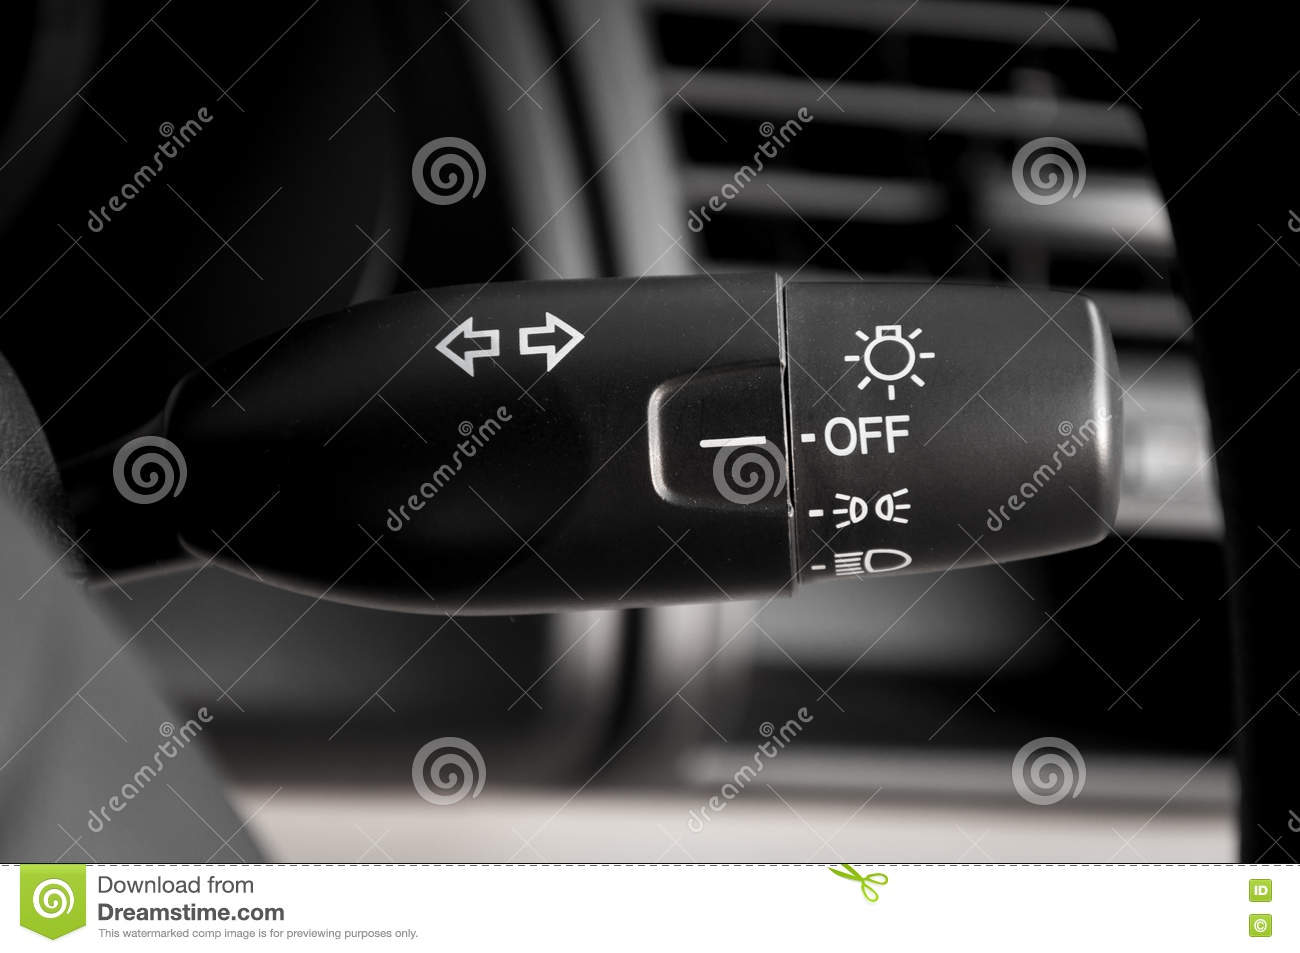 Modern Car Light Switch Control Paddle On Steering Wheel Stock Photo ...